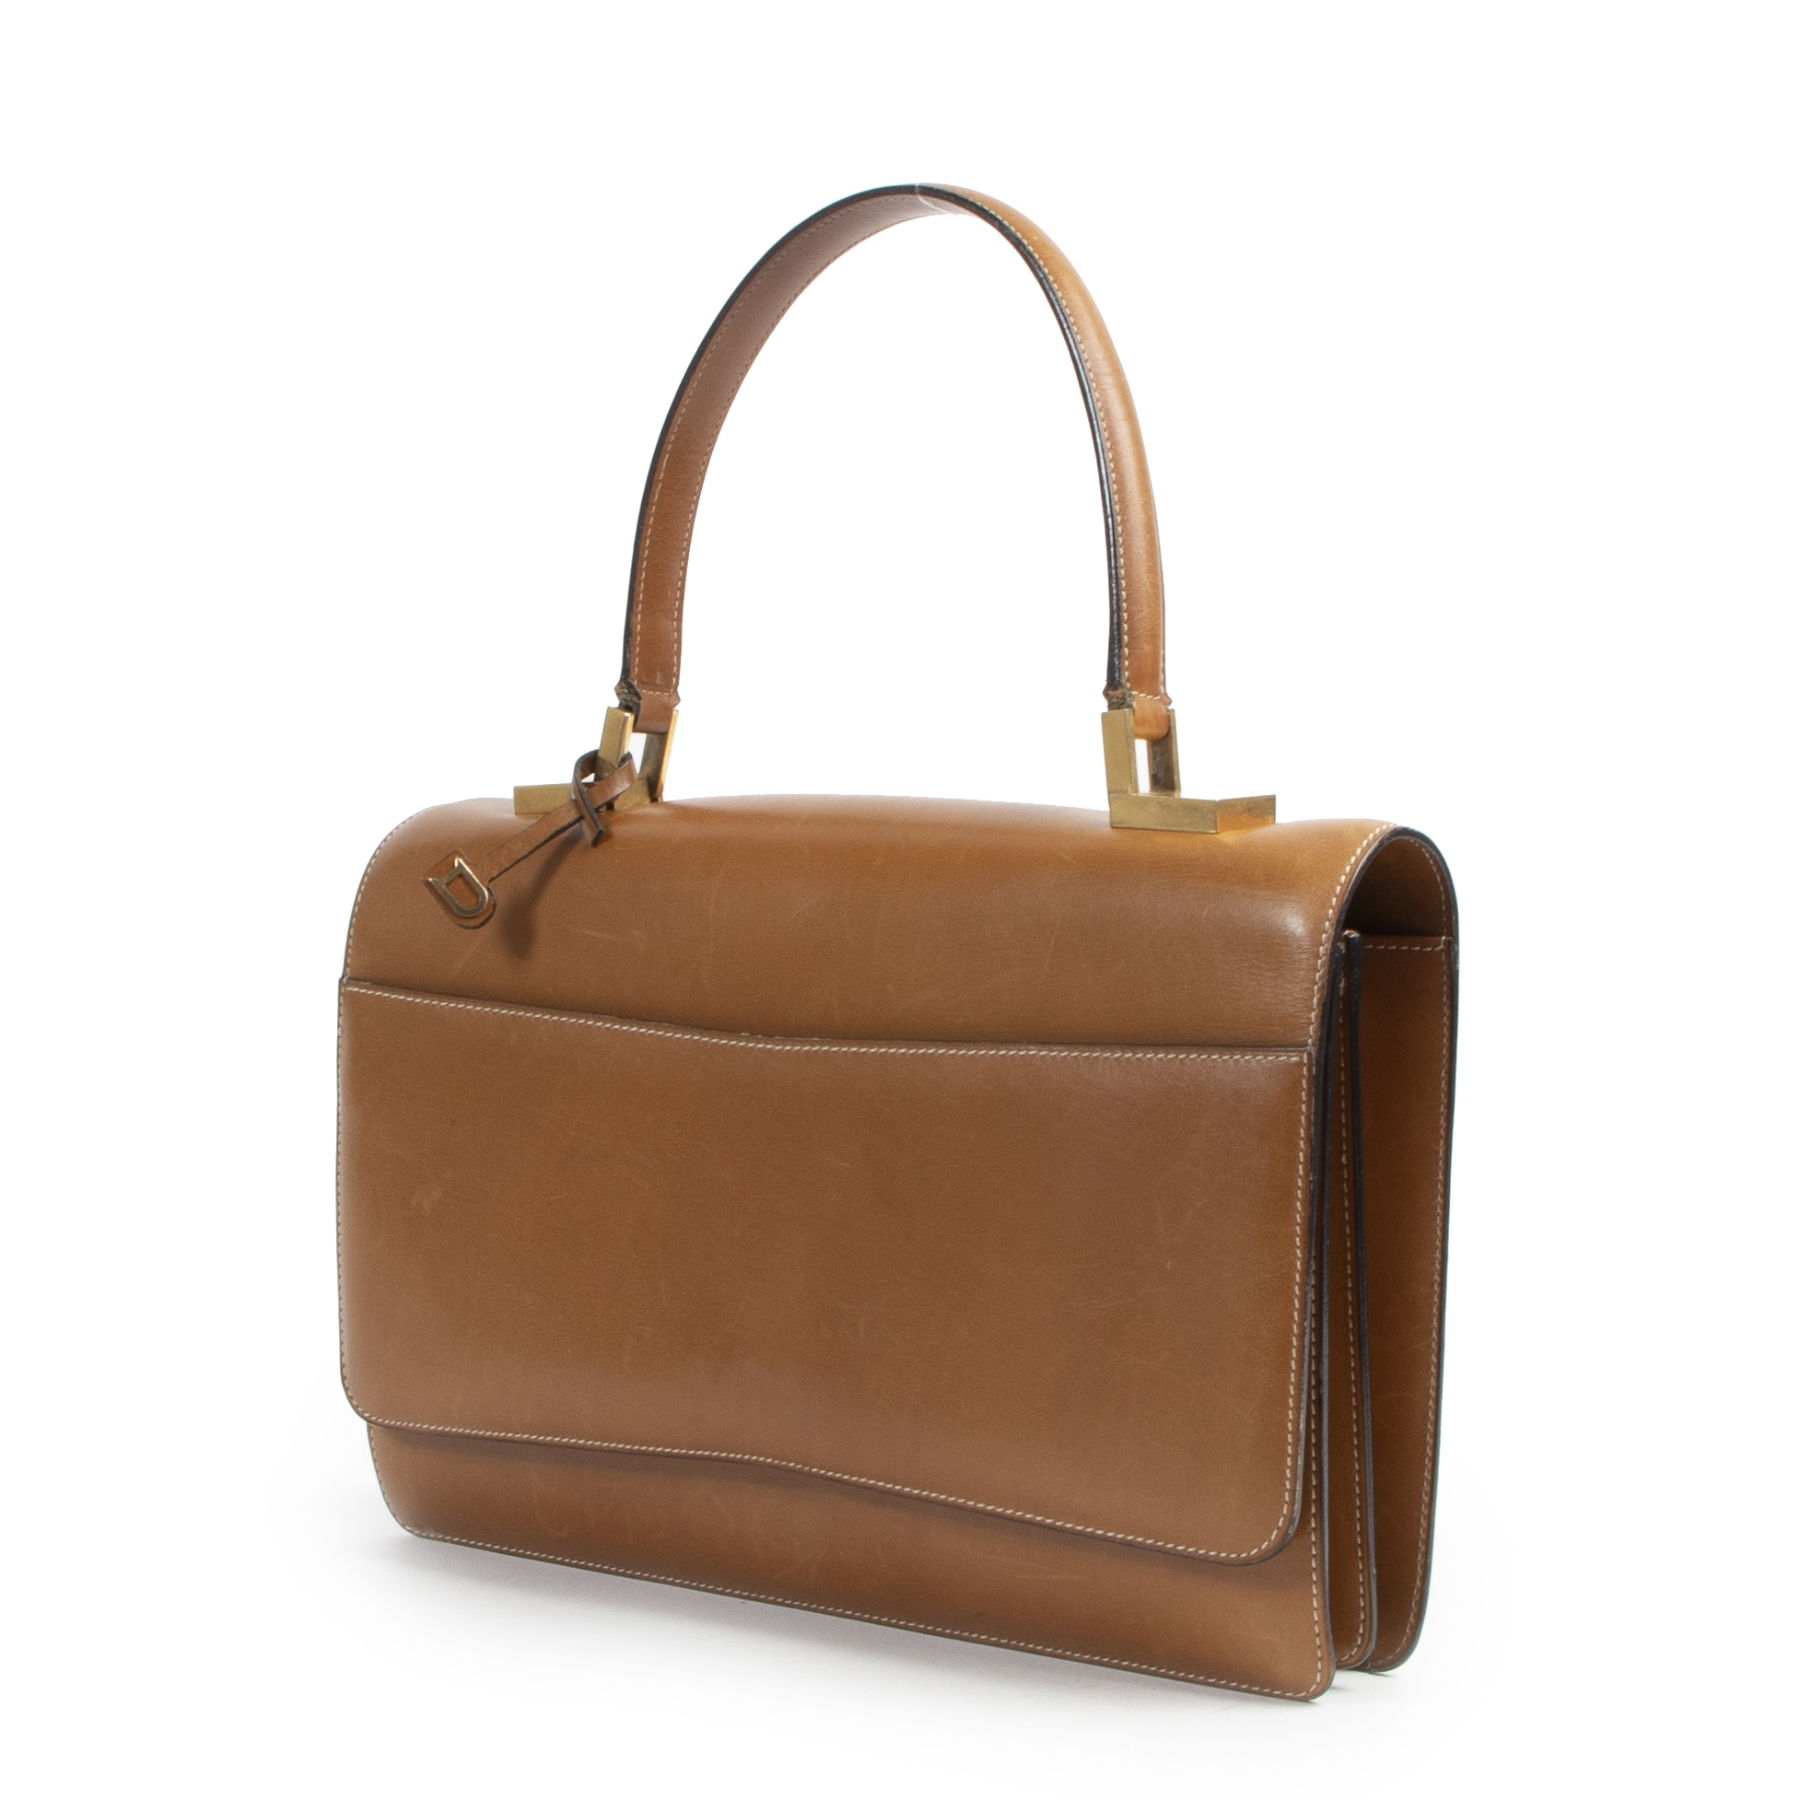 Delvaux Camel Top Handle Bag. Authentieke tweedehands Delvaux handtassen bij LabelLOV Antwerpen. Authentique seconde-main luxury en ligne webshop LabelLOV. Authentic preloved Delvaux handbags at LabelLOV Antwerp.